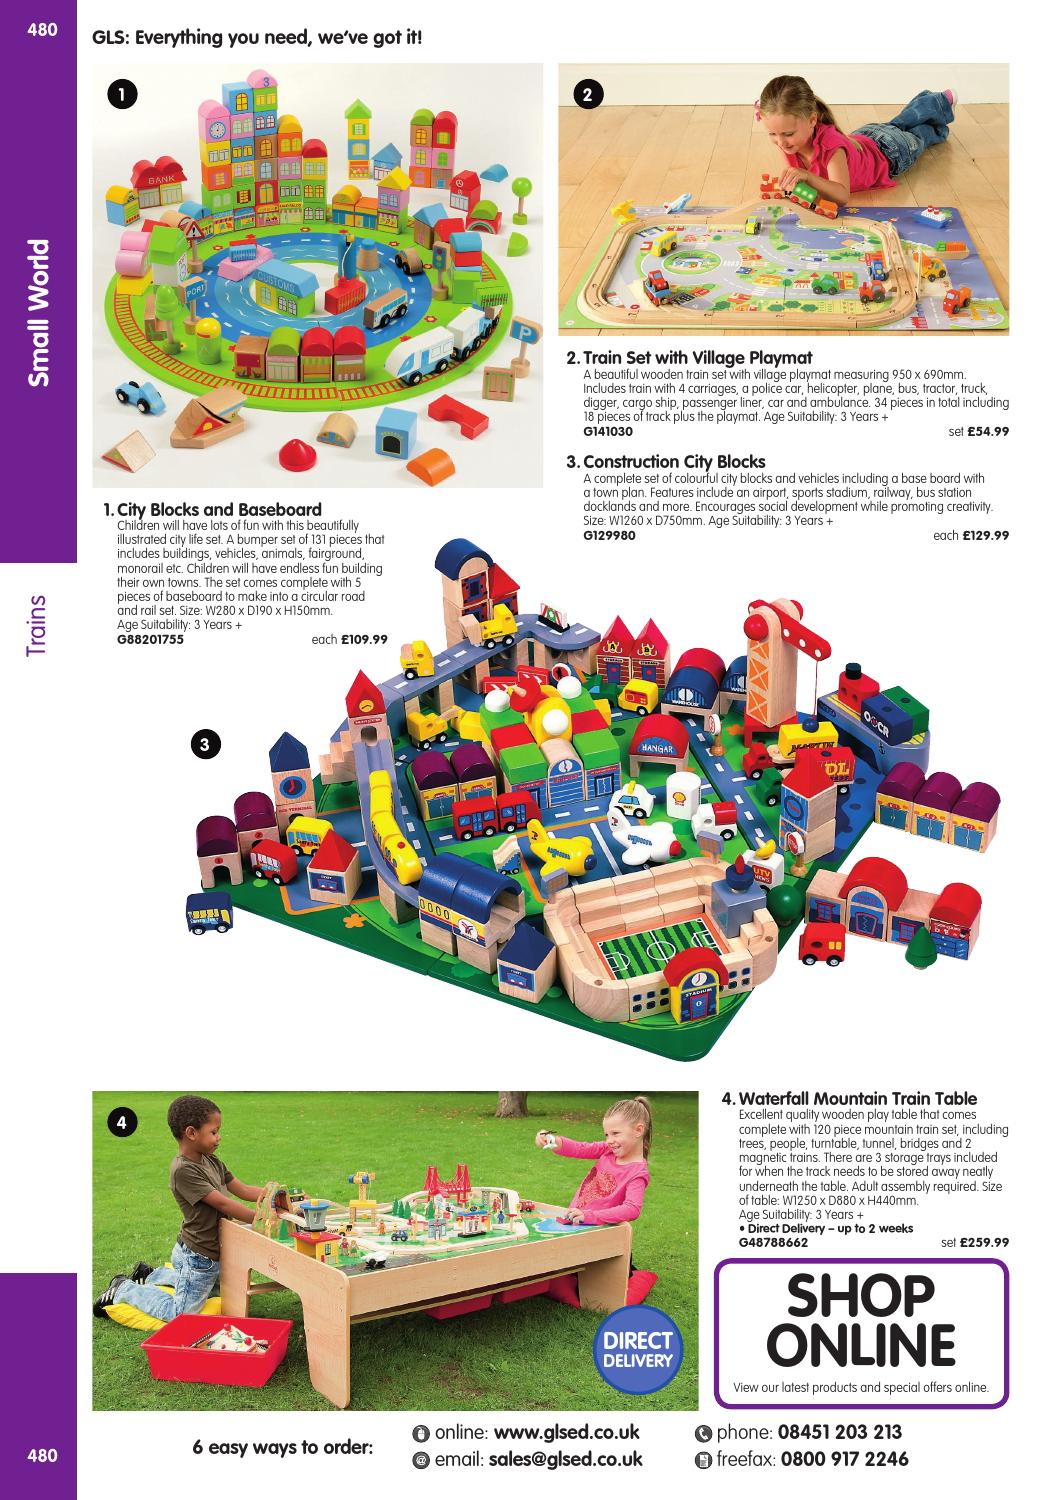 GLS Educational Supplies Catalogue 2015/16 - Small World by